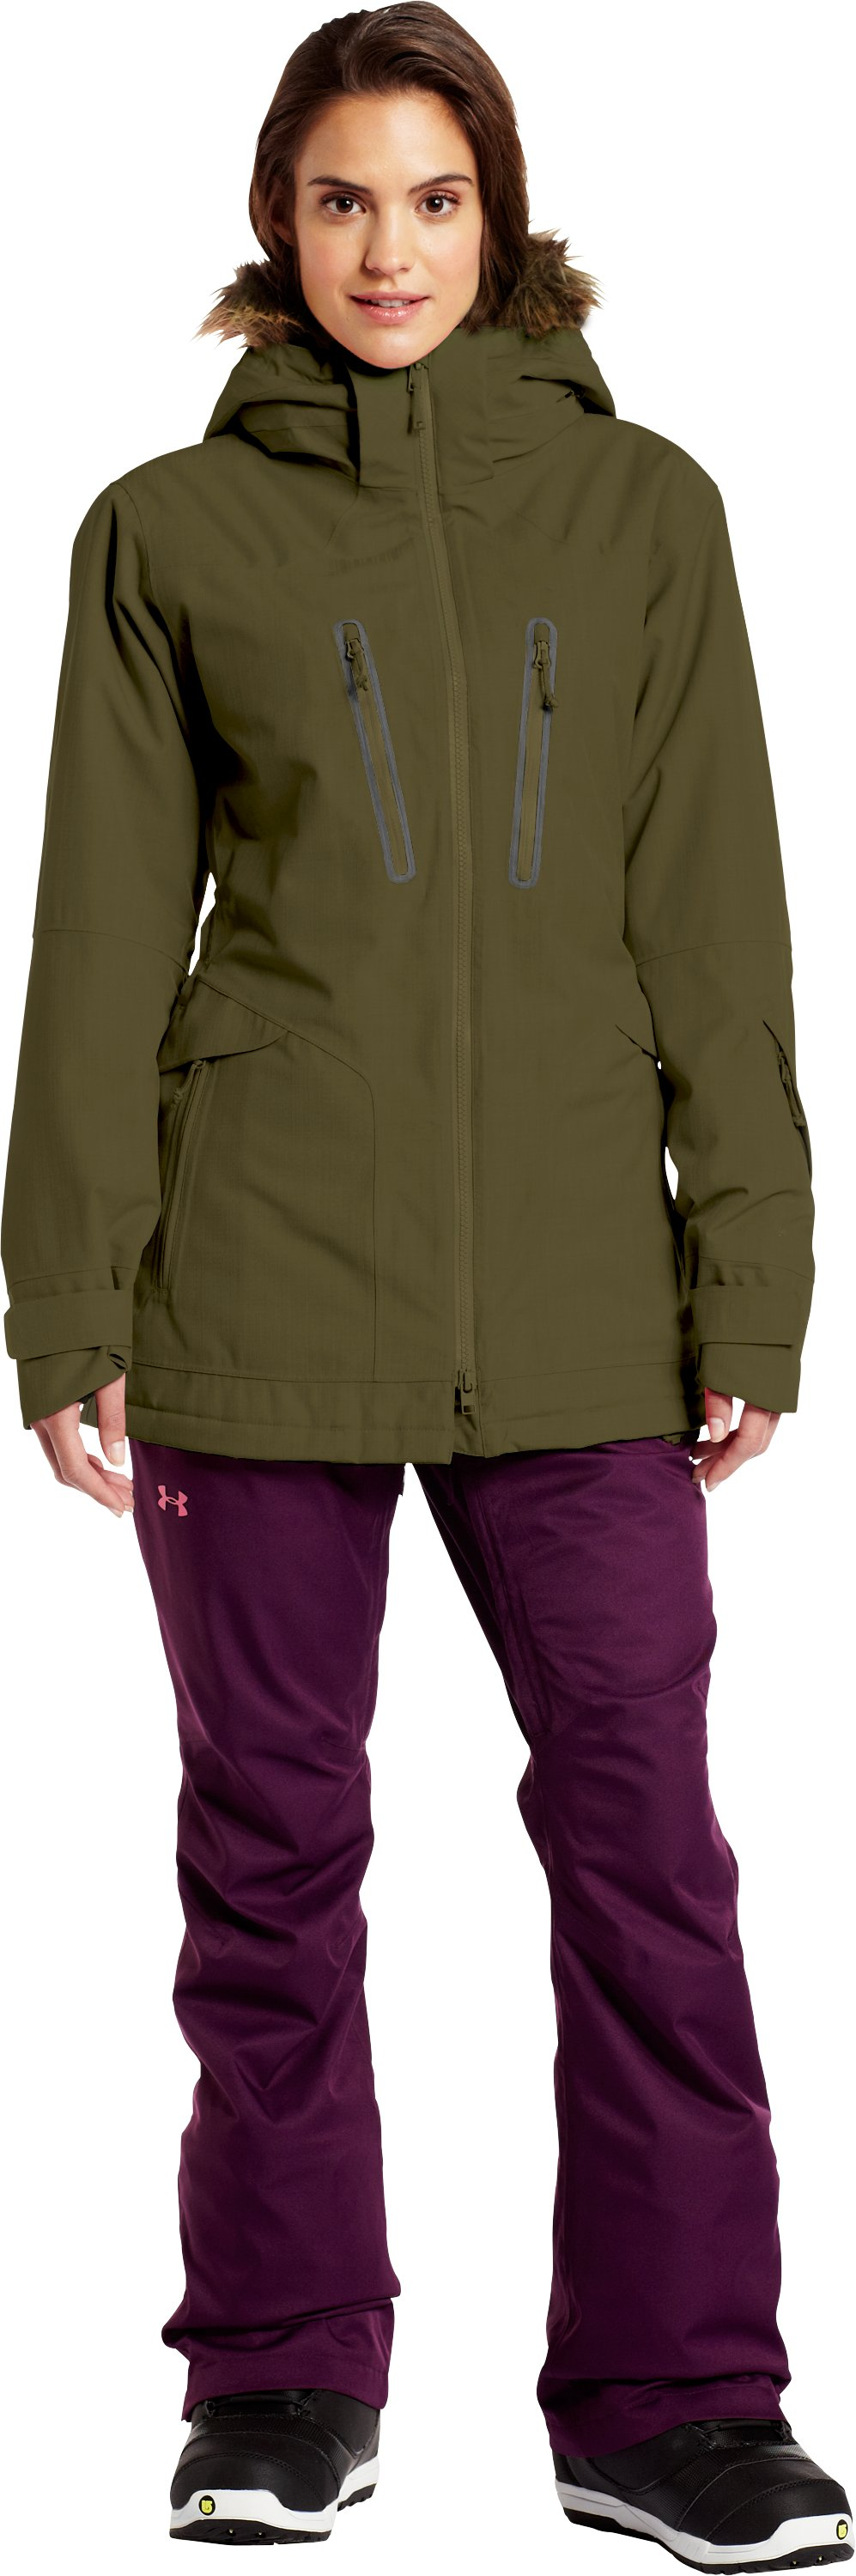 Women's ColdGear® Infrared Cleopatra Jacket, GREENHEAD